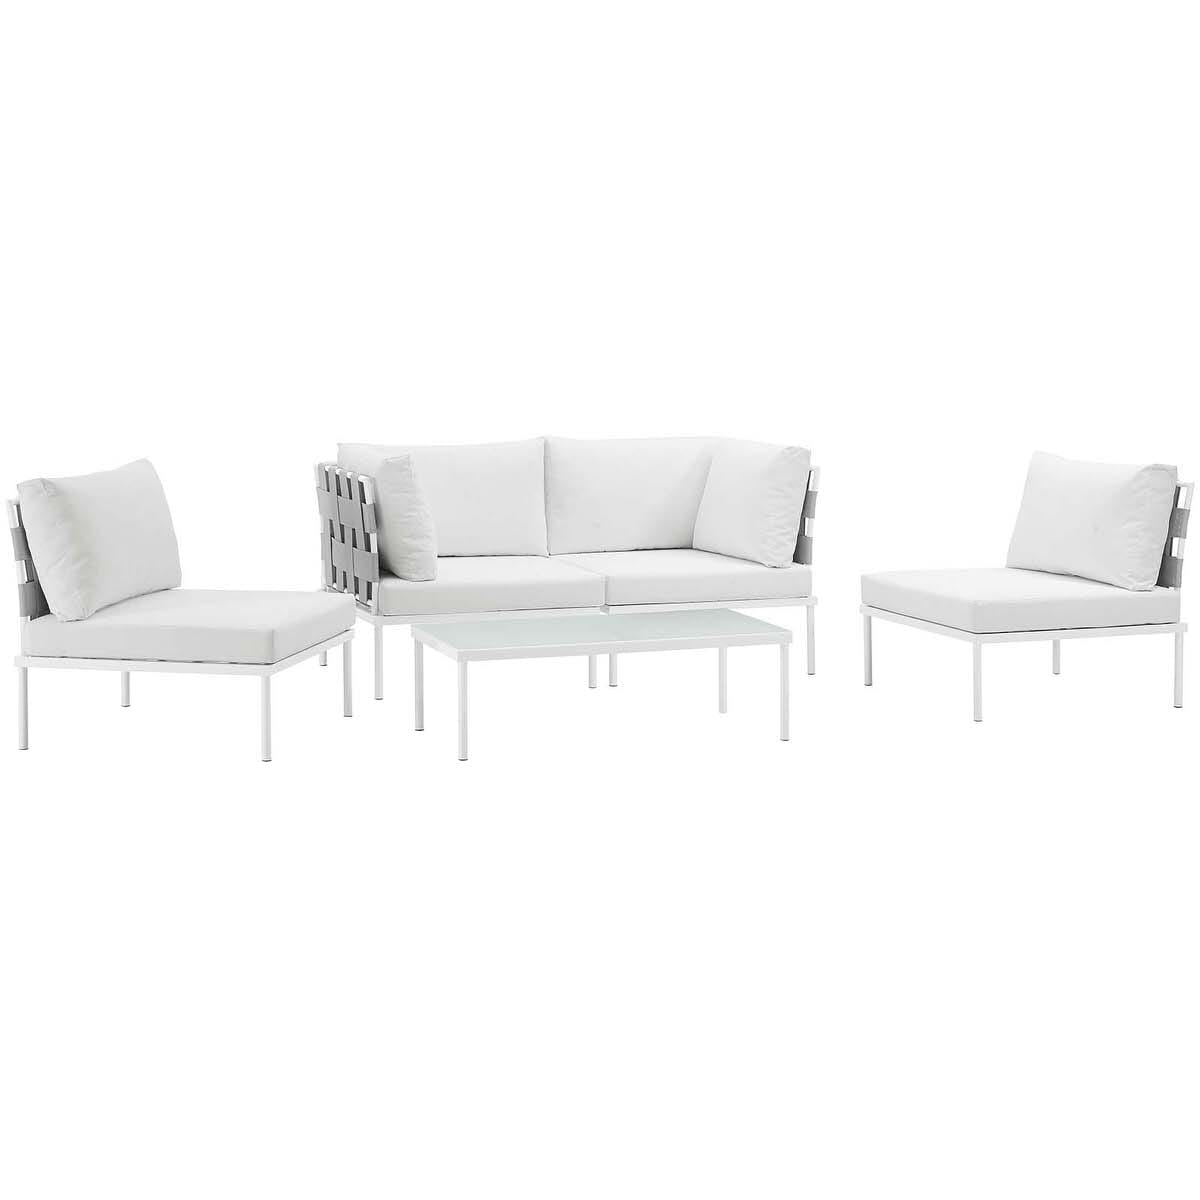 Harmony 5 Piece Outdoor Patio Aluminum Sectional Sofa Set White White by  Modern Living